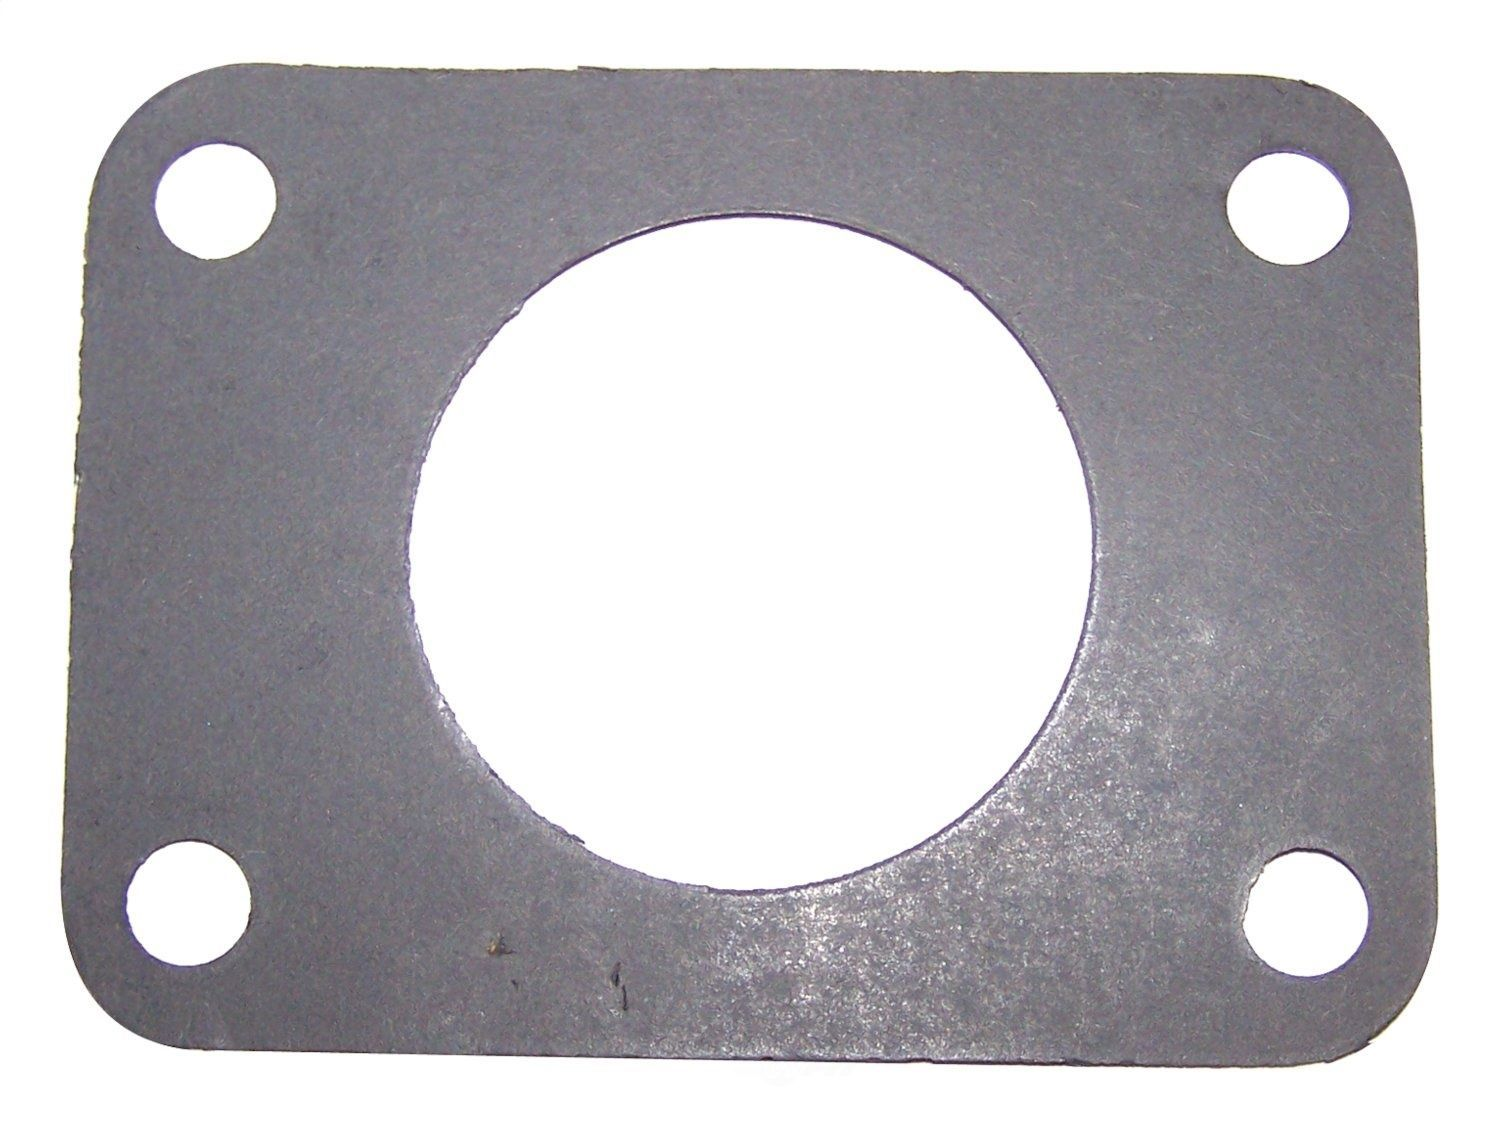 CROWN AUTOMOTIVE SALES CO. - Throttle Body Gasket - CAJ 53002154